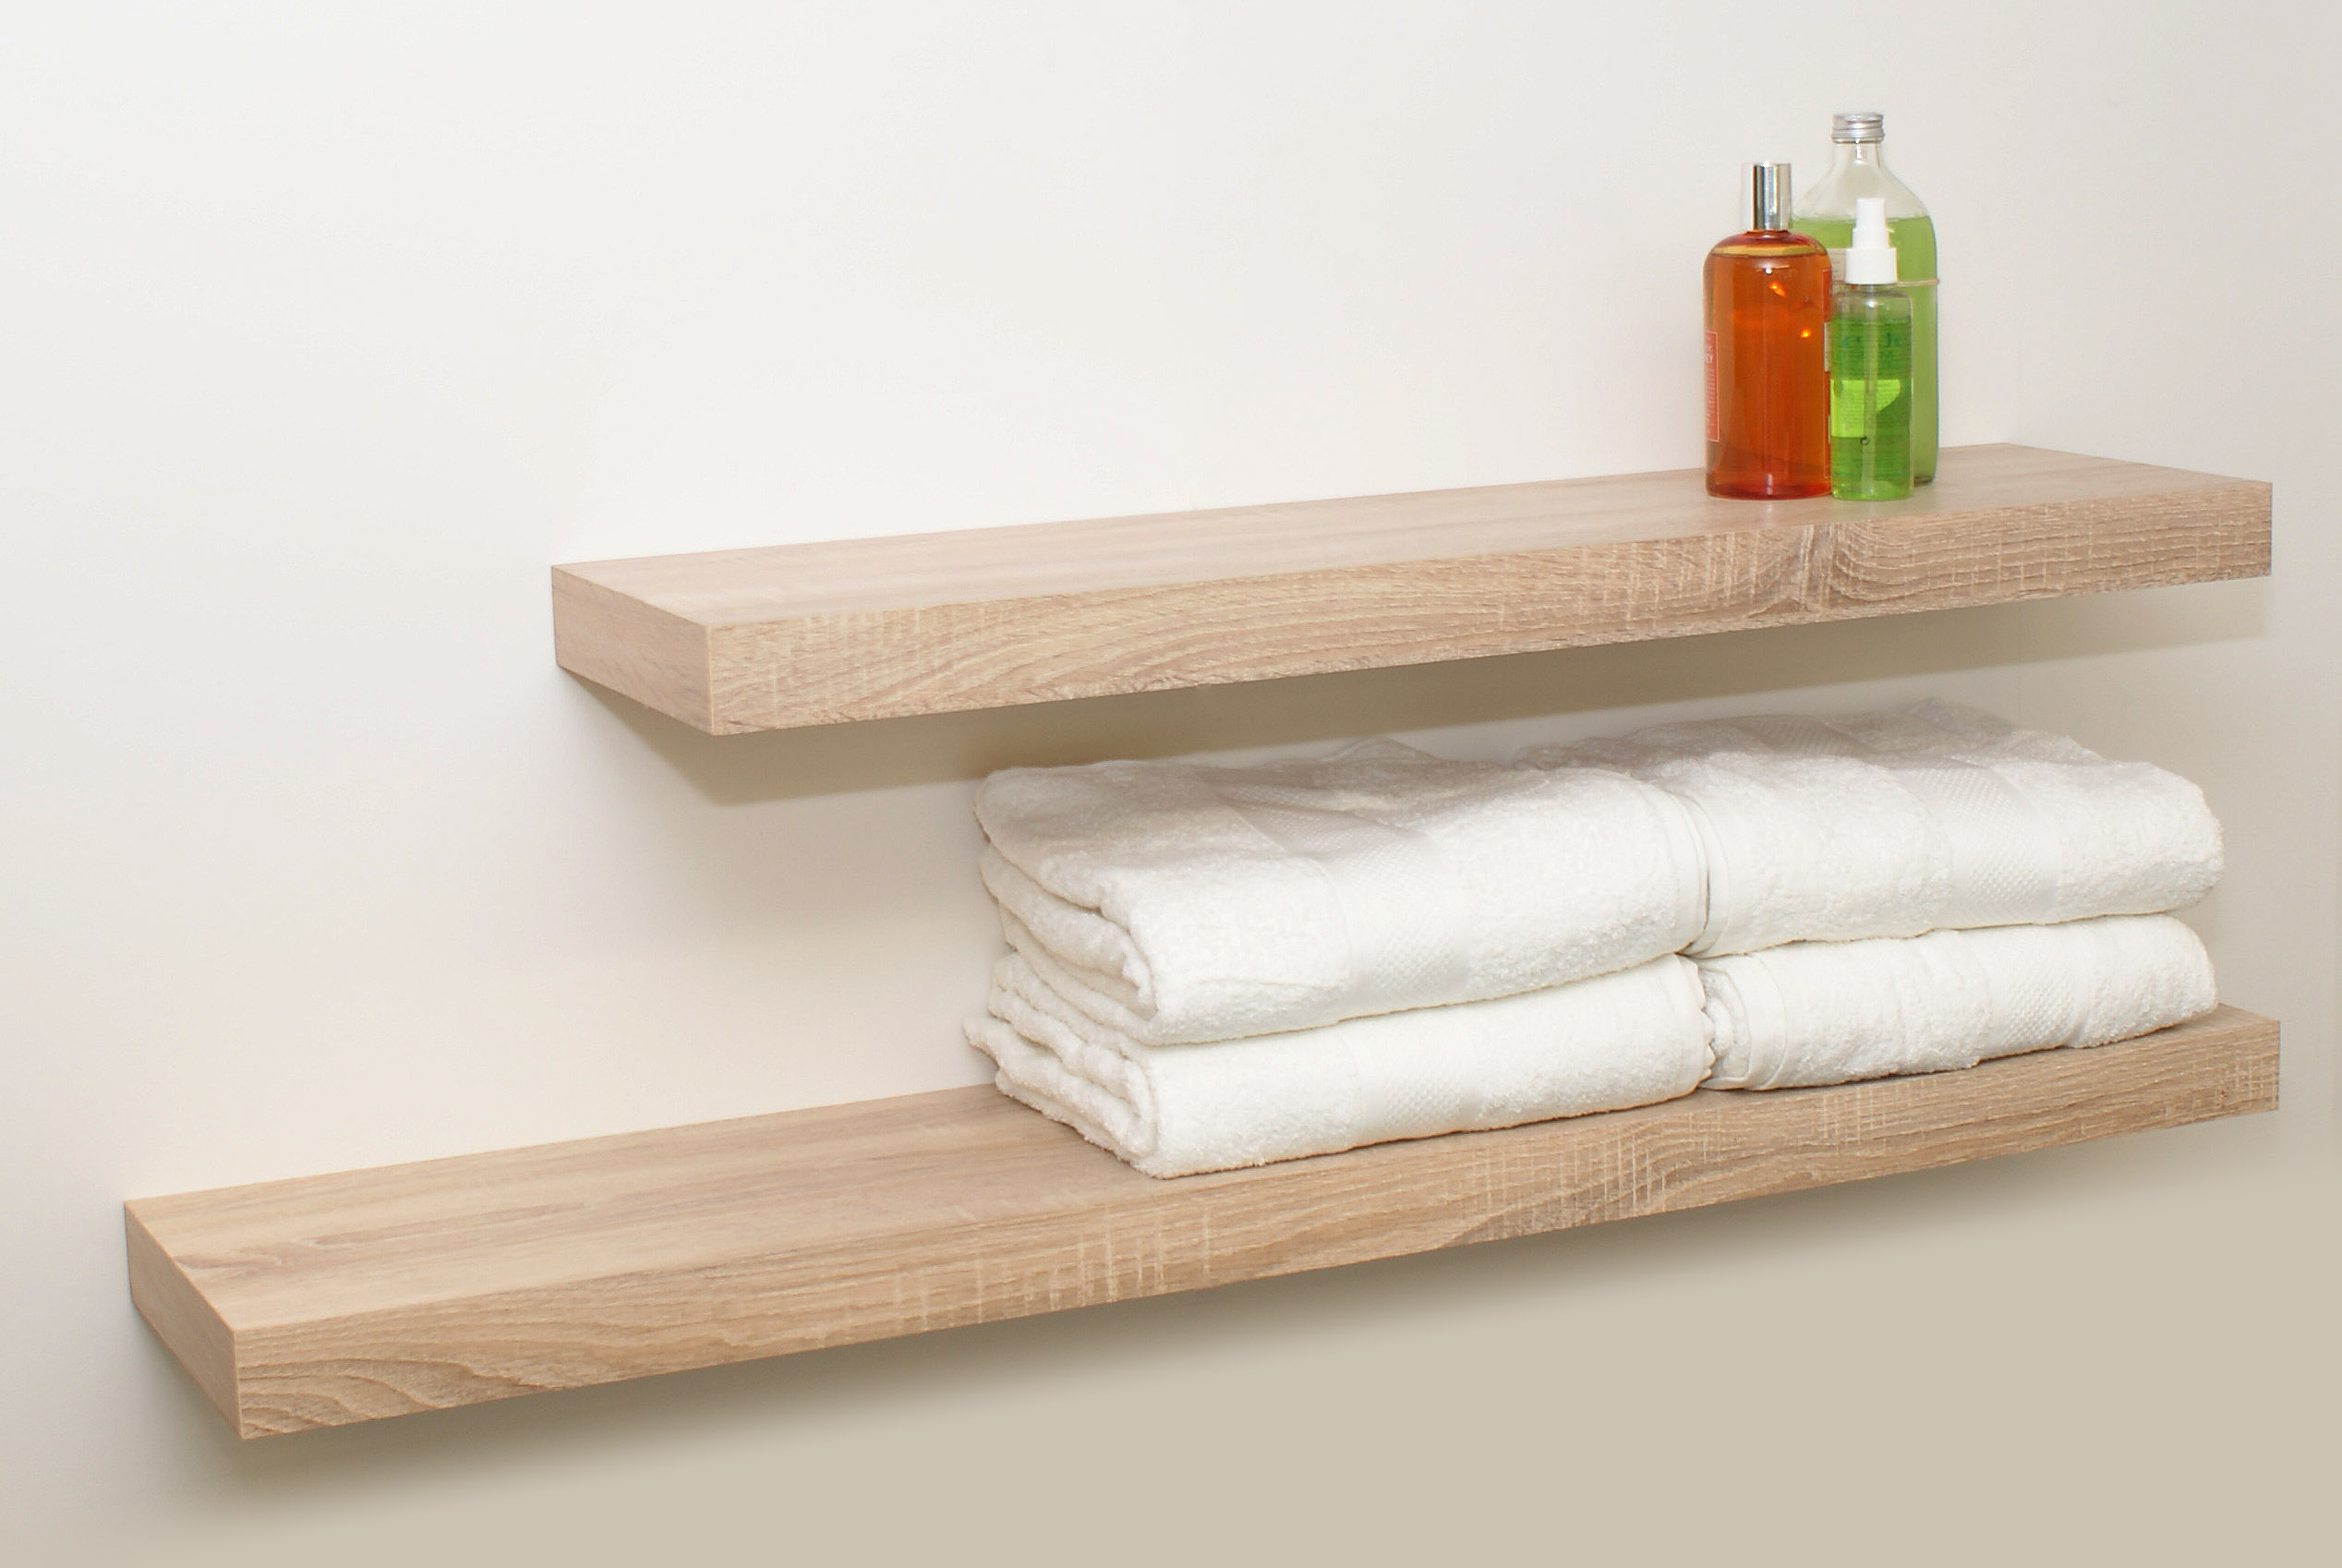 floating shelf wood white storage cabinet kit topshelf pine kits homemade kitchen shelves metal wall shelving systems glass shower open unit wire mesh canadian tire pound command